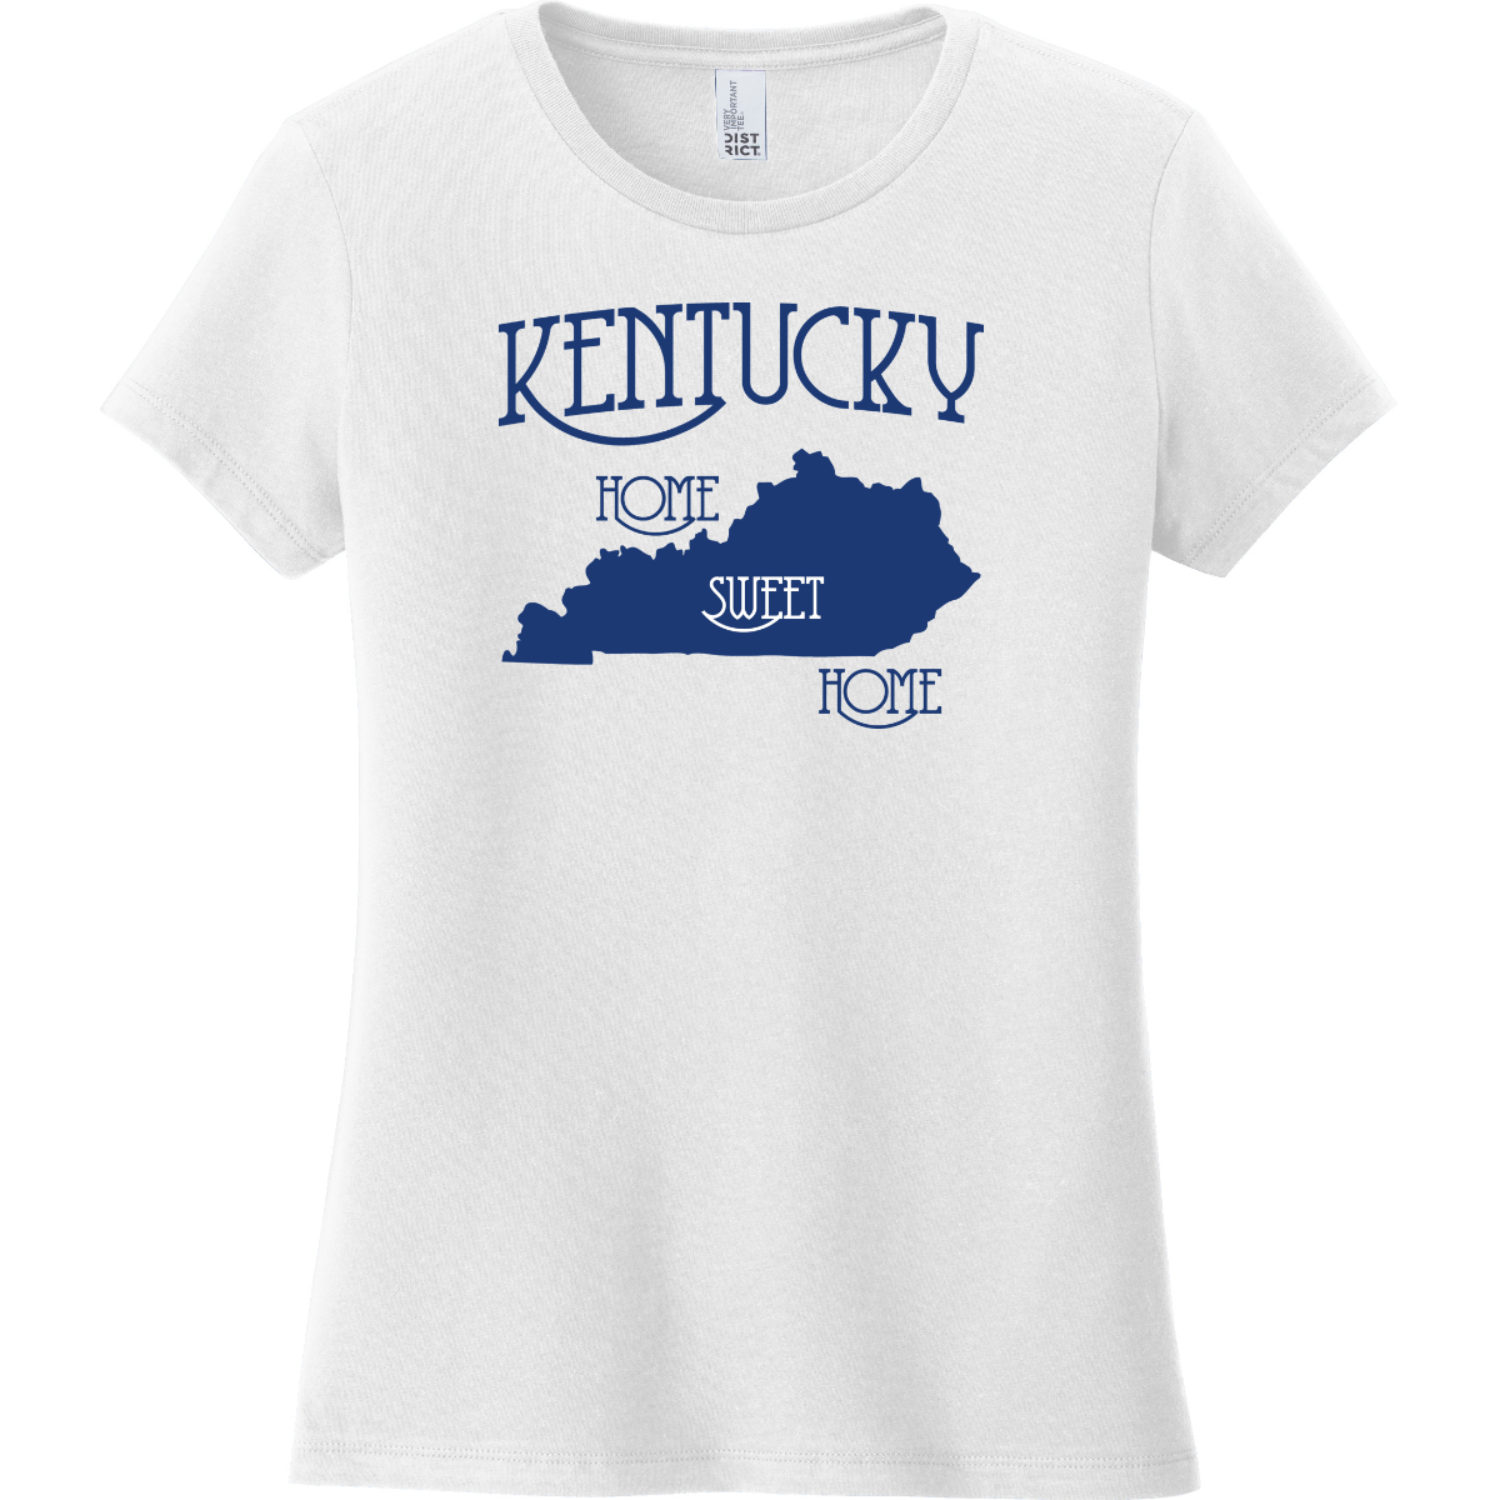 Kentucky Country Home Sweet Home T-Shirt White District Women's Very Important Tee DT6002